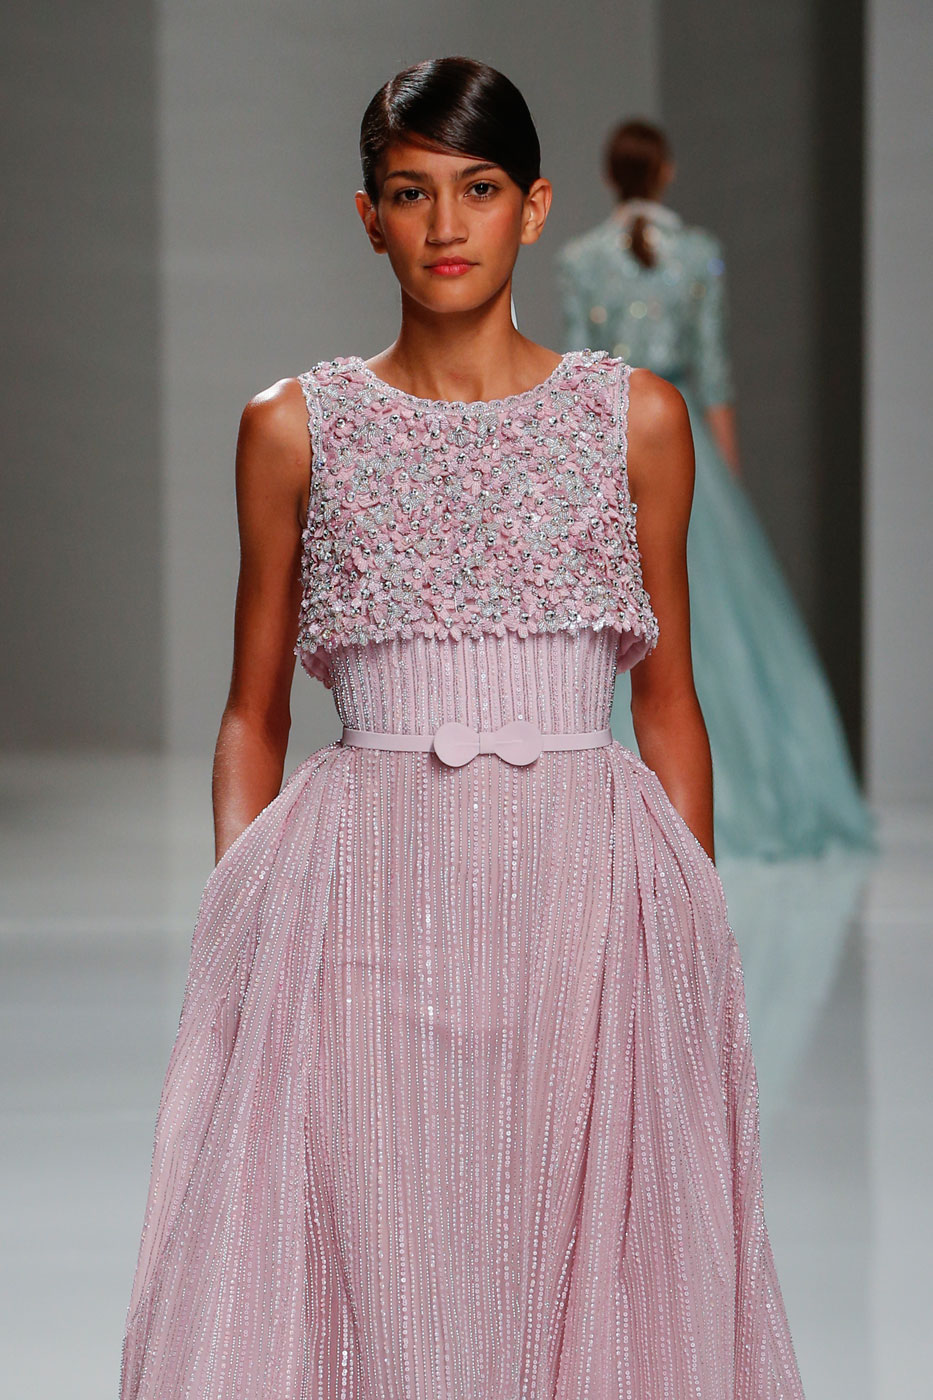 Georges-Hobeika-fashion-runway-show-haute-couture-paris-spring-2015-the-impression-22